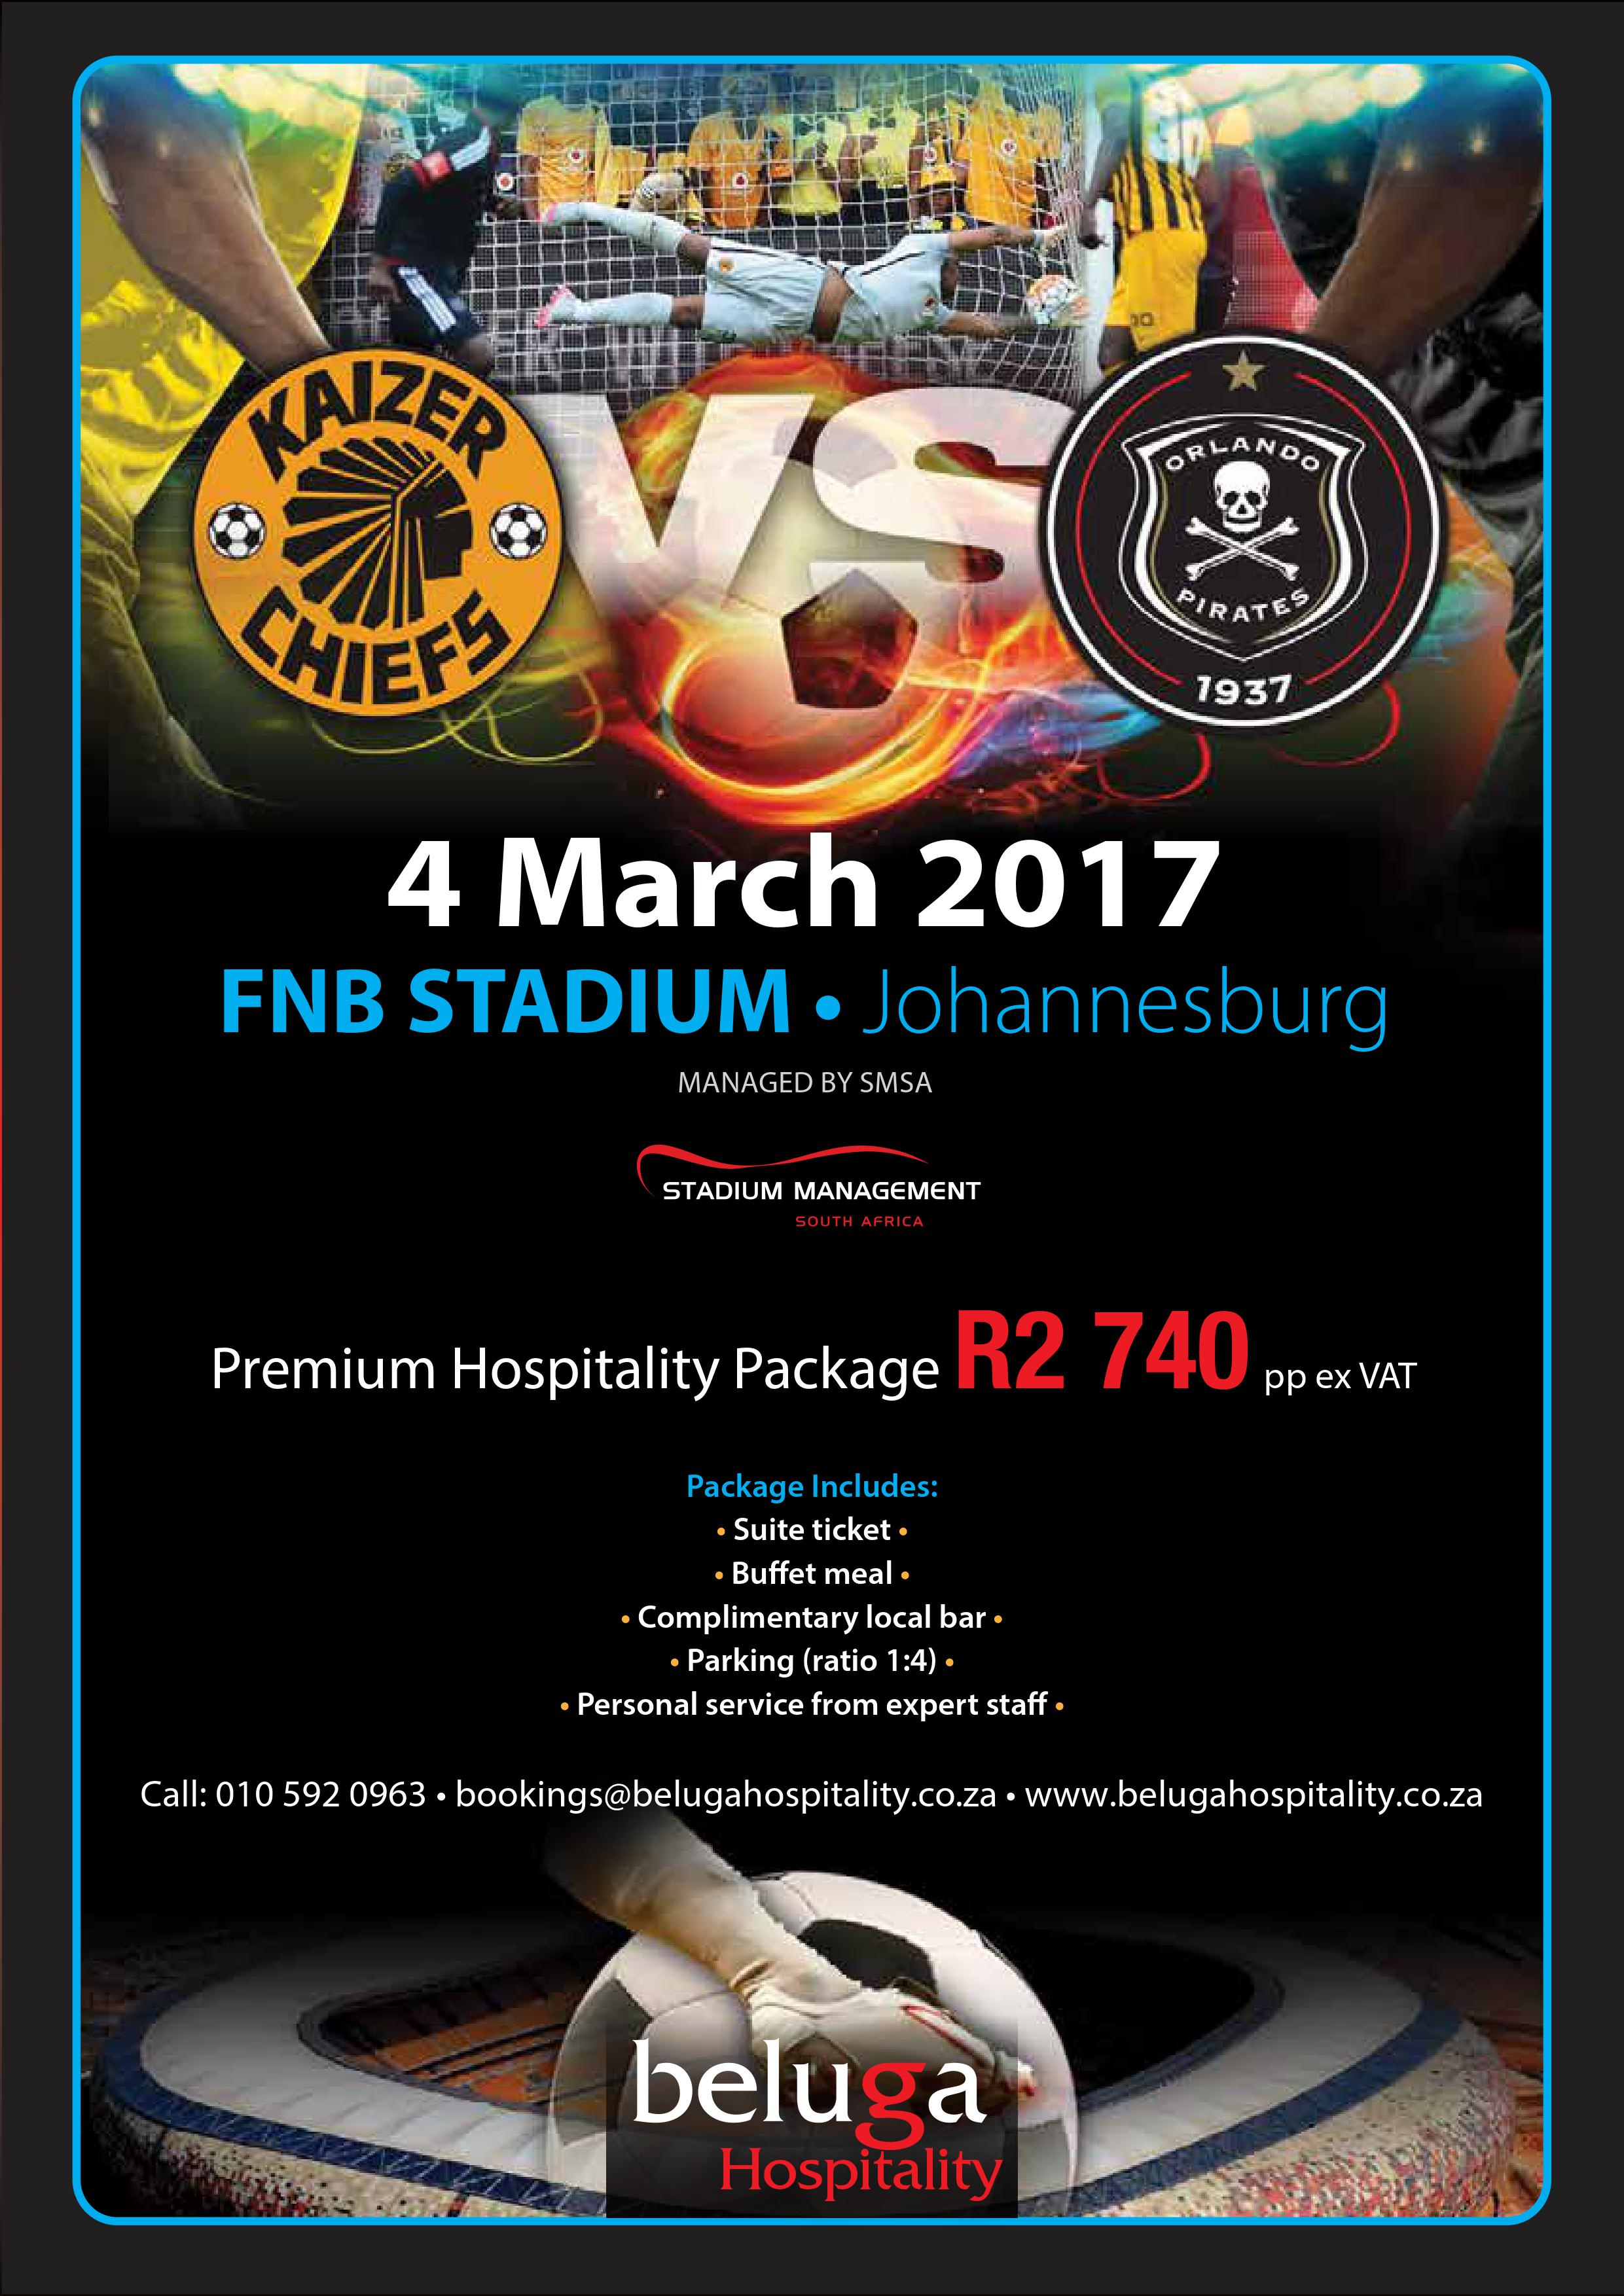 soweto derby - orlando pirates vs kaizer chiefs